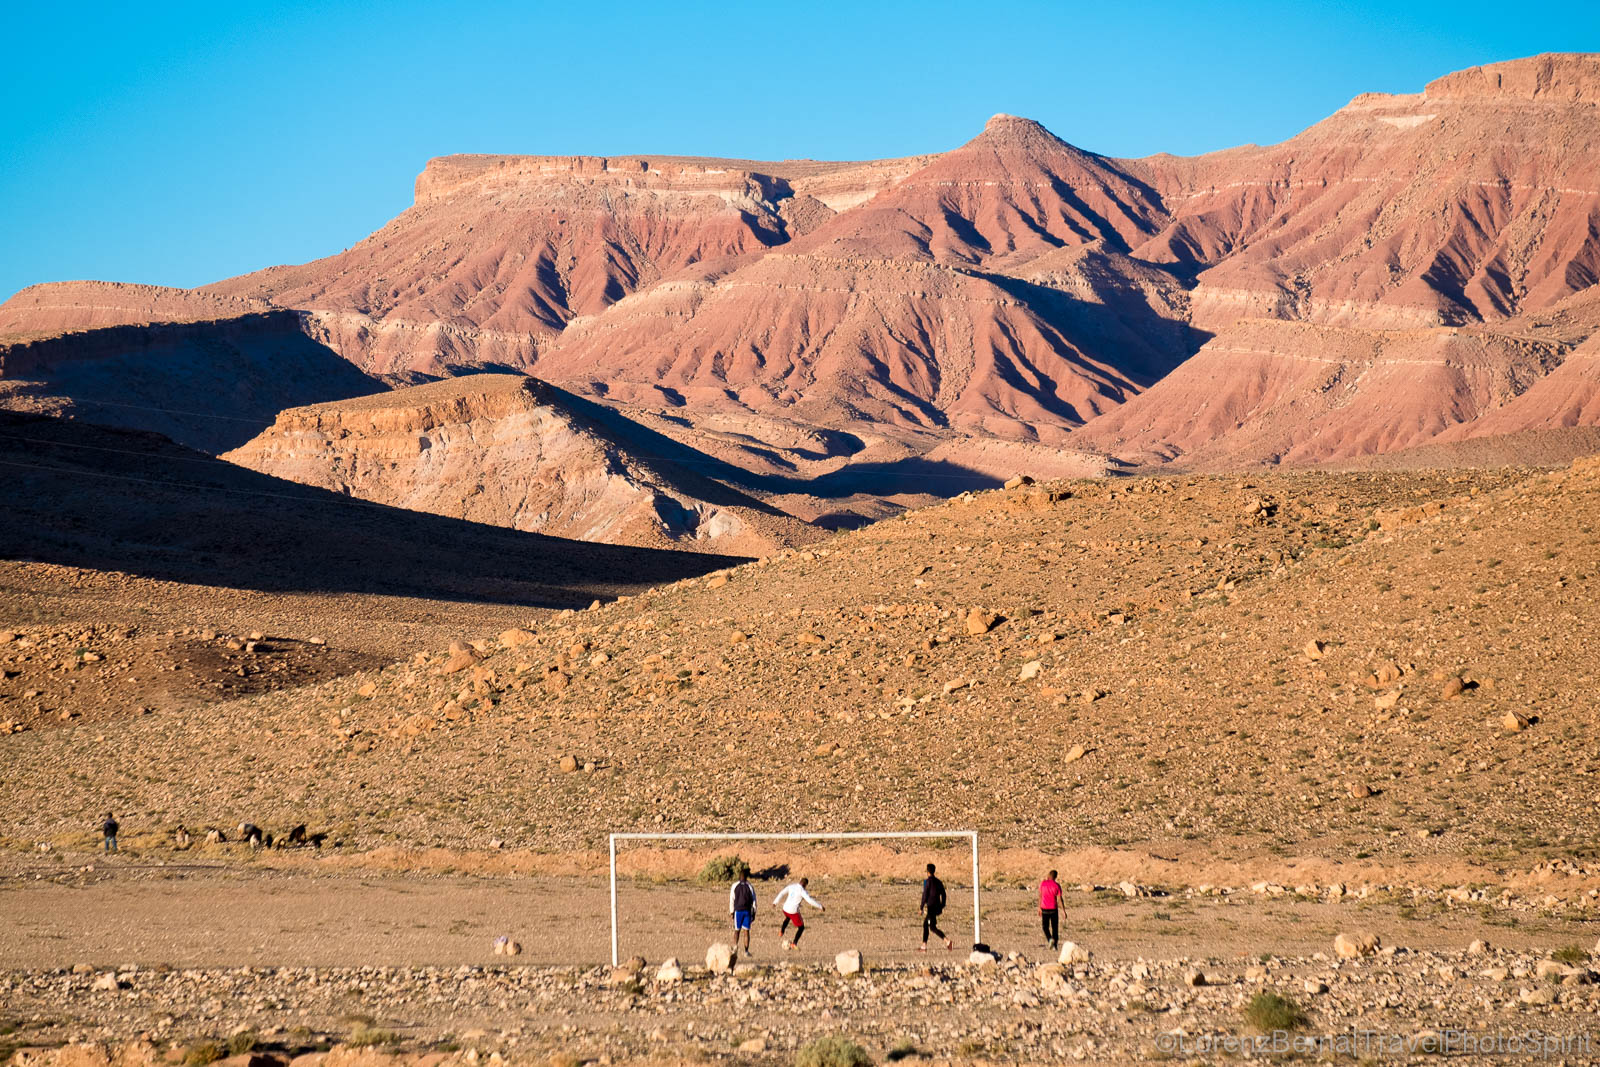 Football on the mountain fields, Morocco